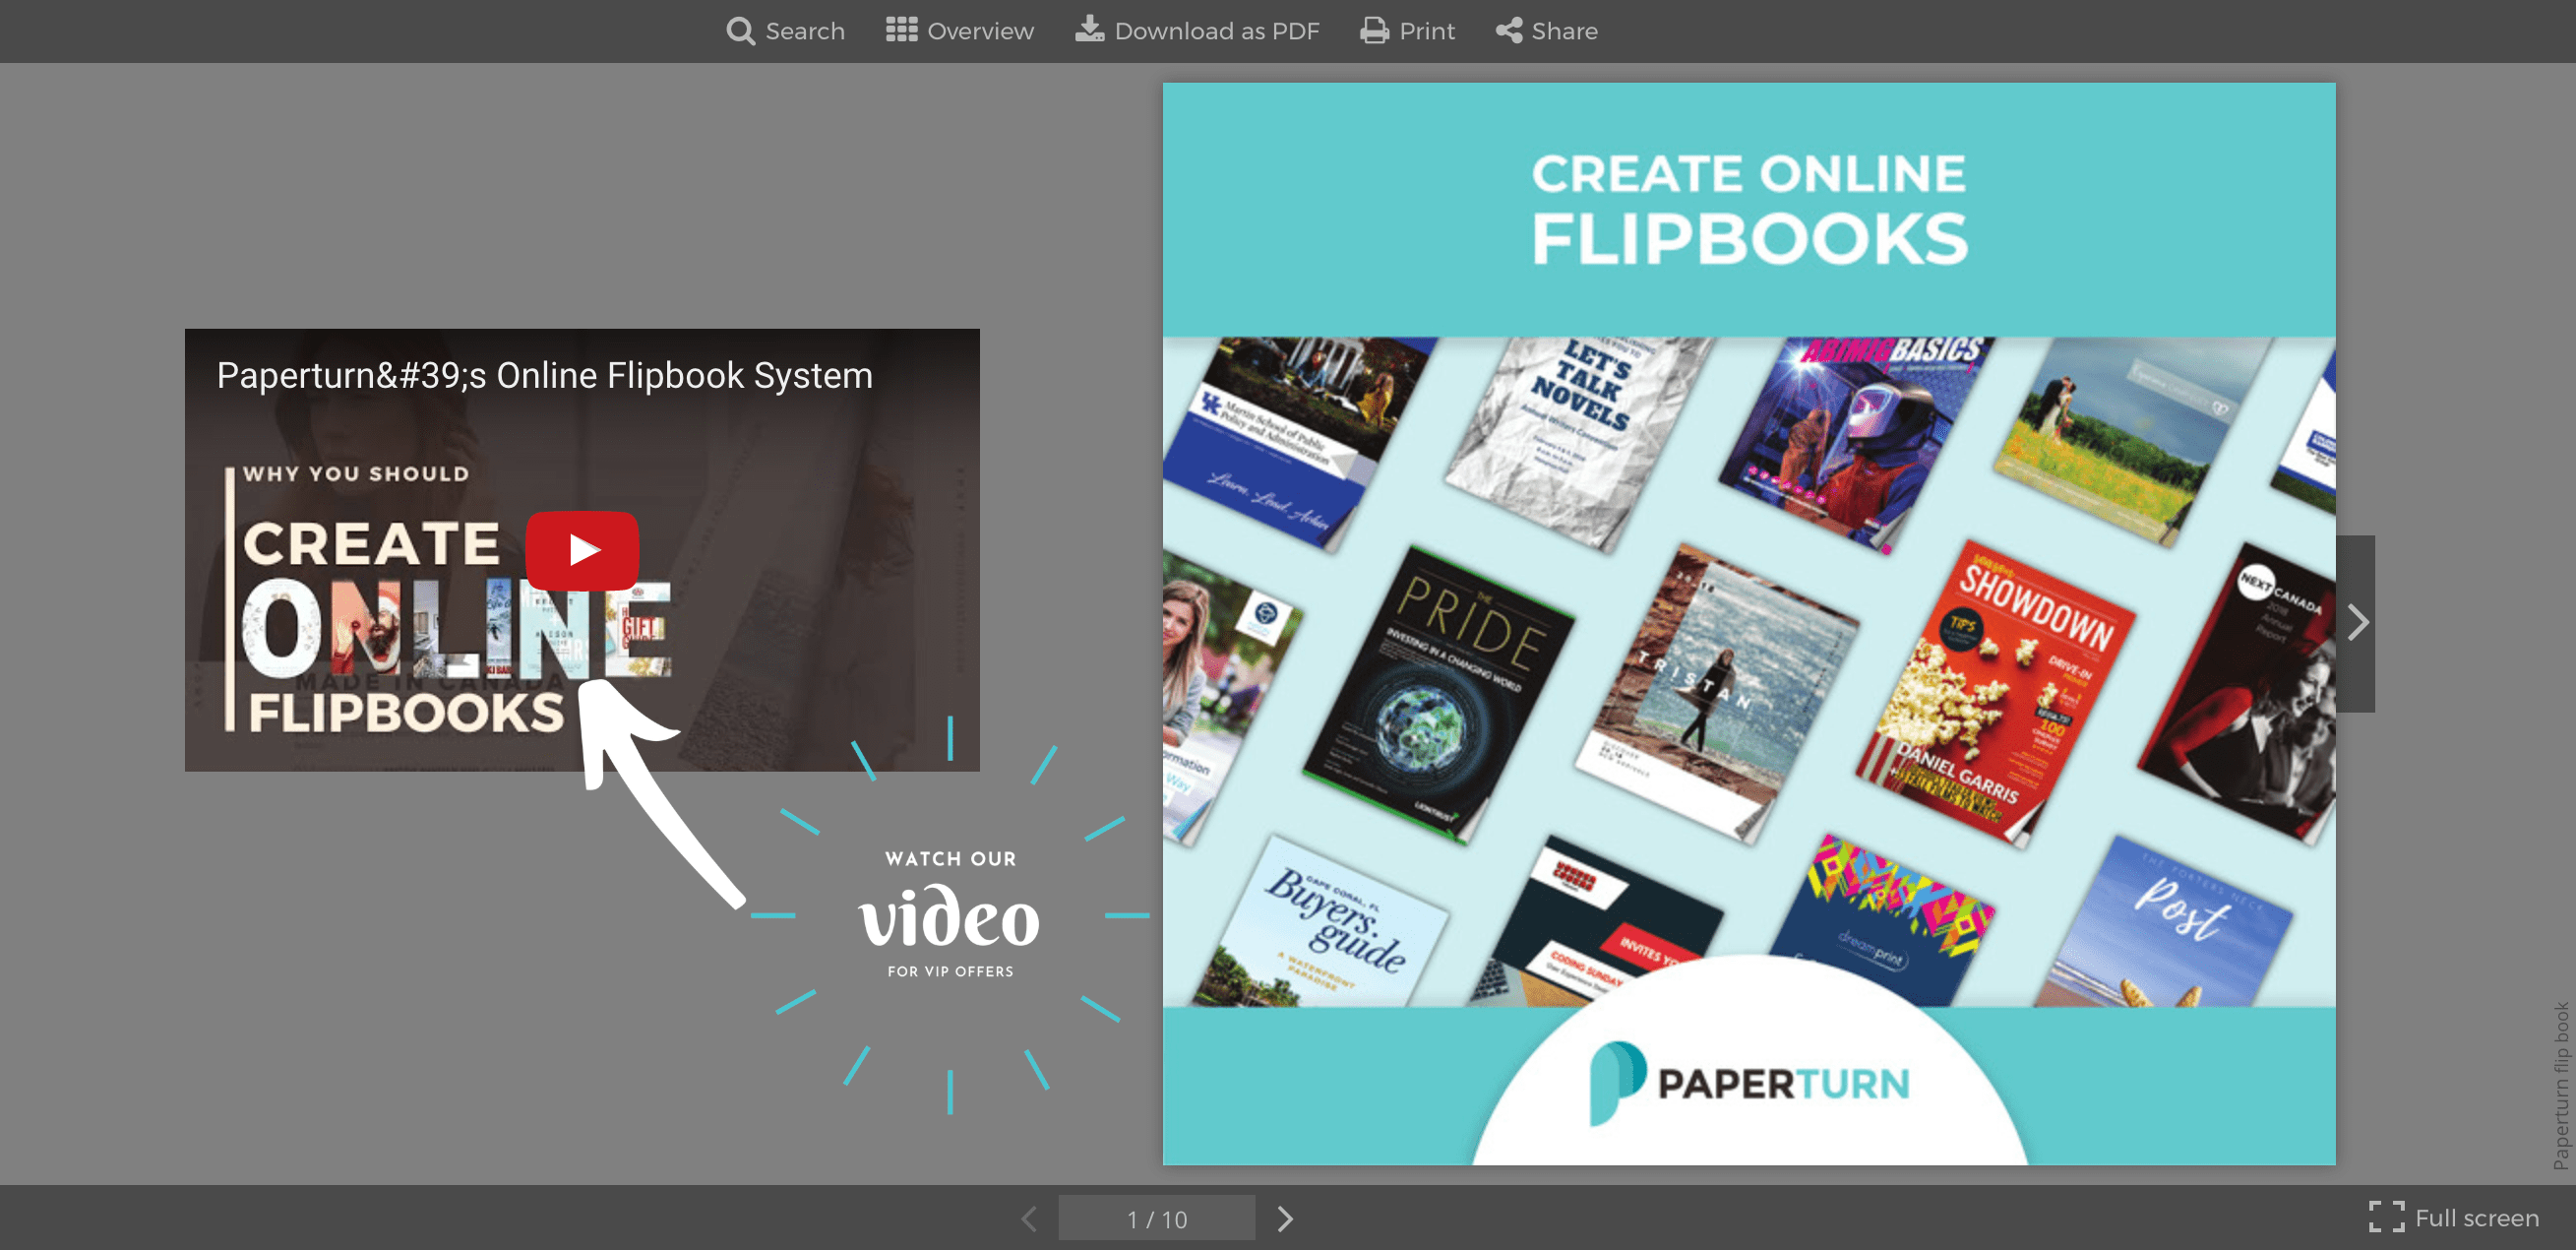 Advertising banner of a video displayed next to the front page of a flipbook in the Paperturn viewer